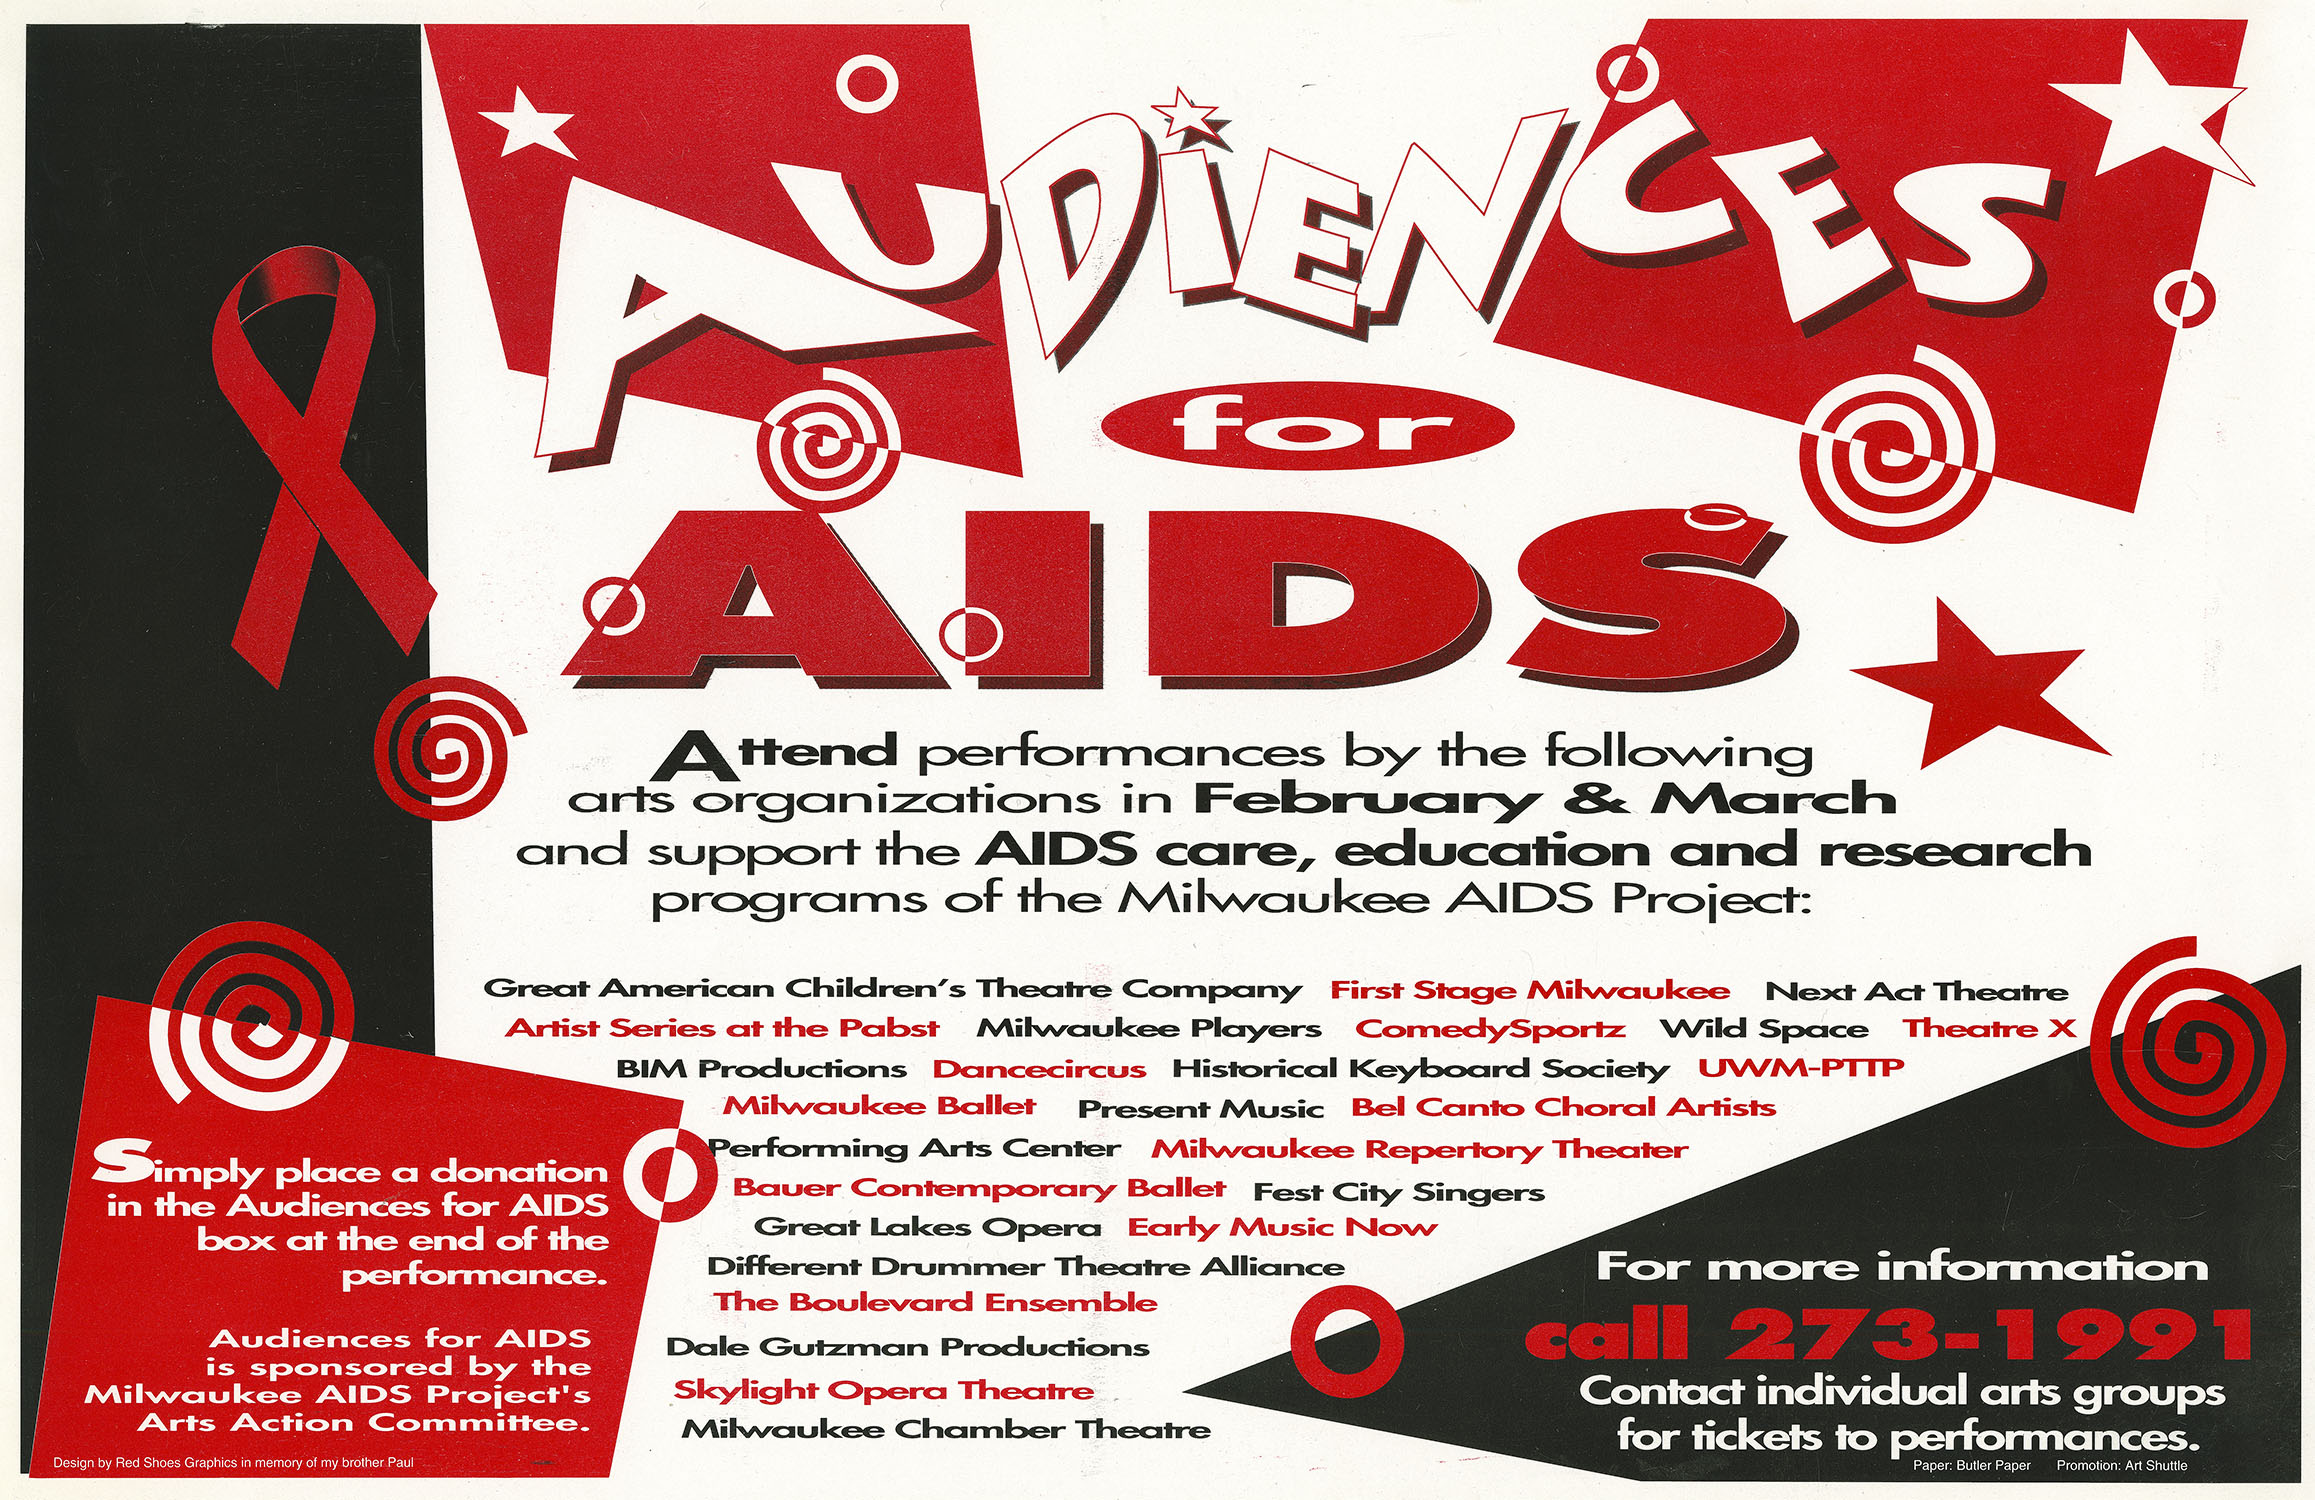 aids papers research This essay aids is available for you on essays24com search term papers, college essay examples and free autor: sara ortiz • october 7, 2015 • research paper • 692 words (3 pages) • 244 views.